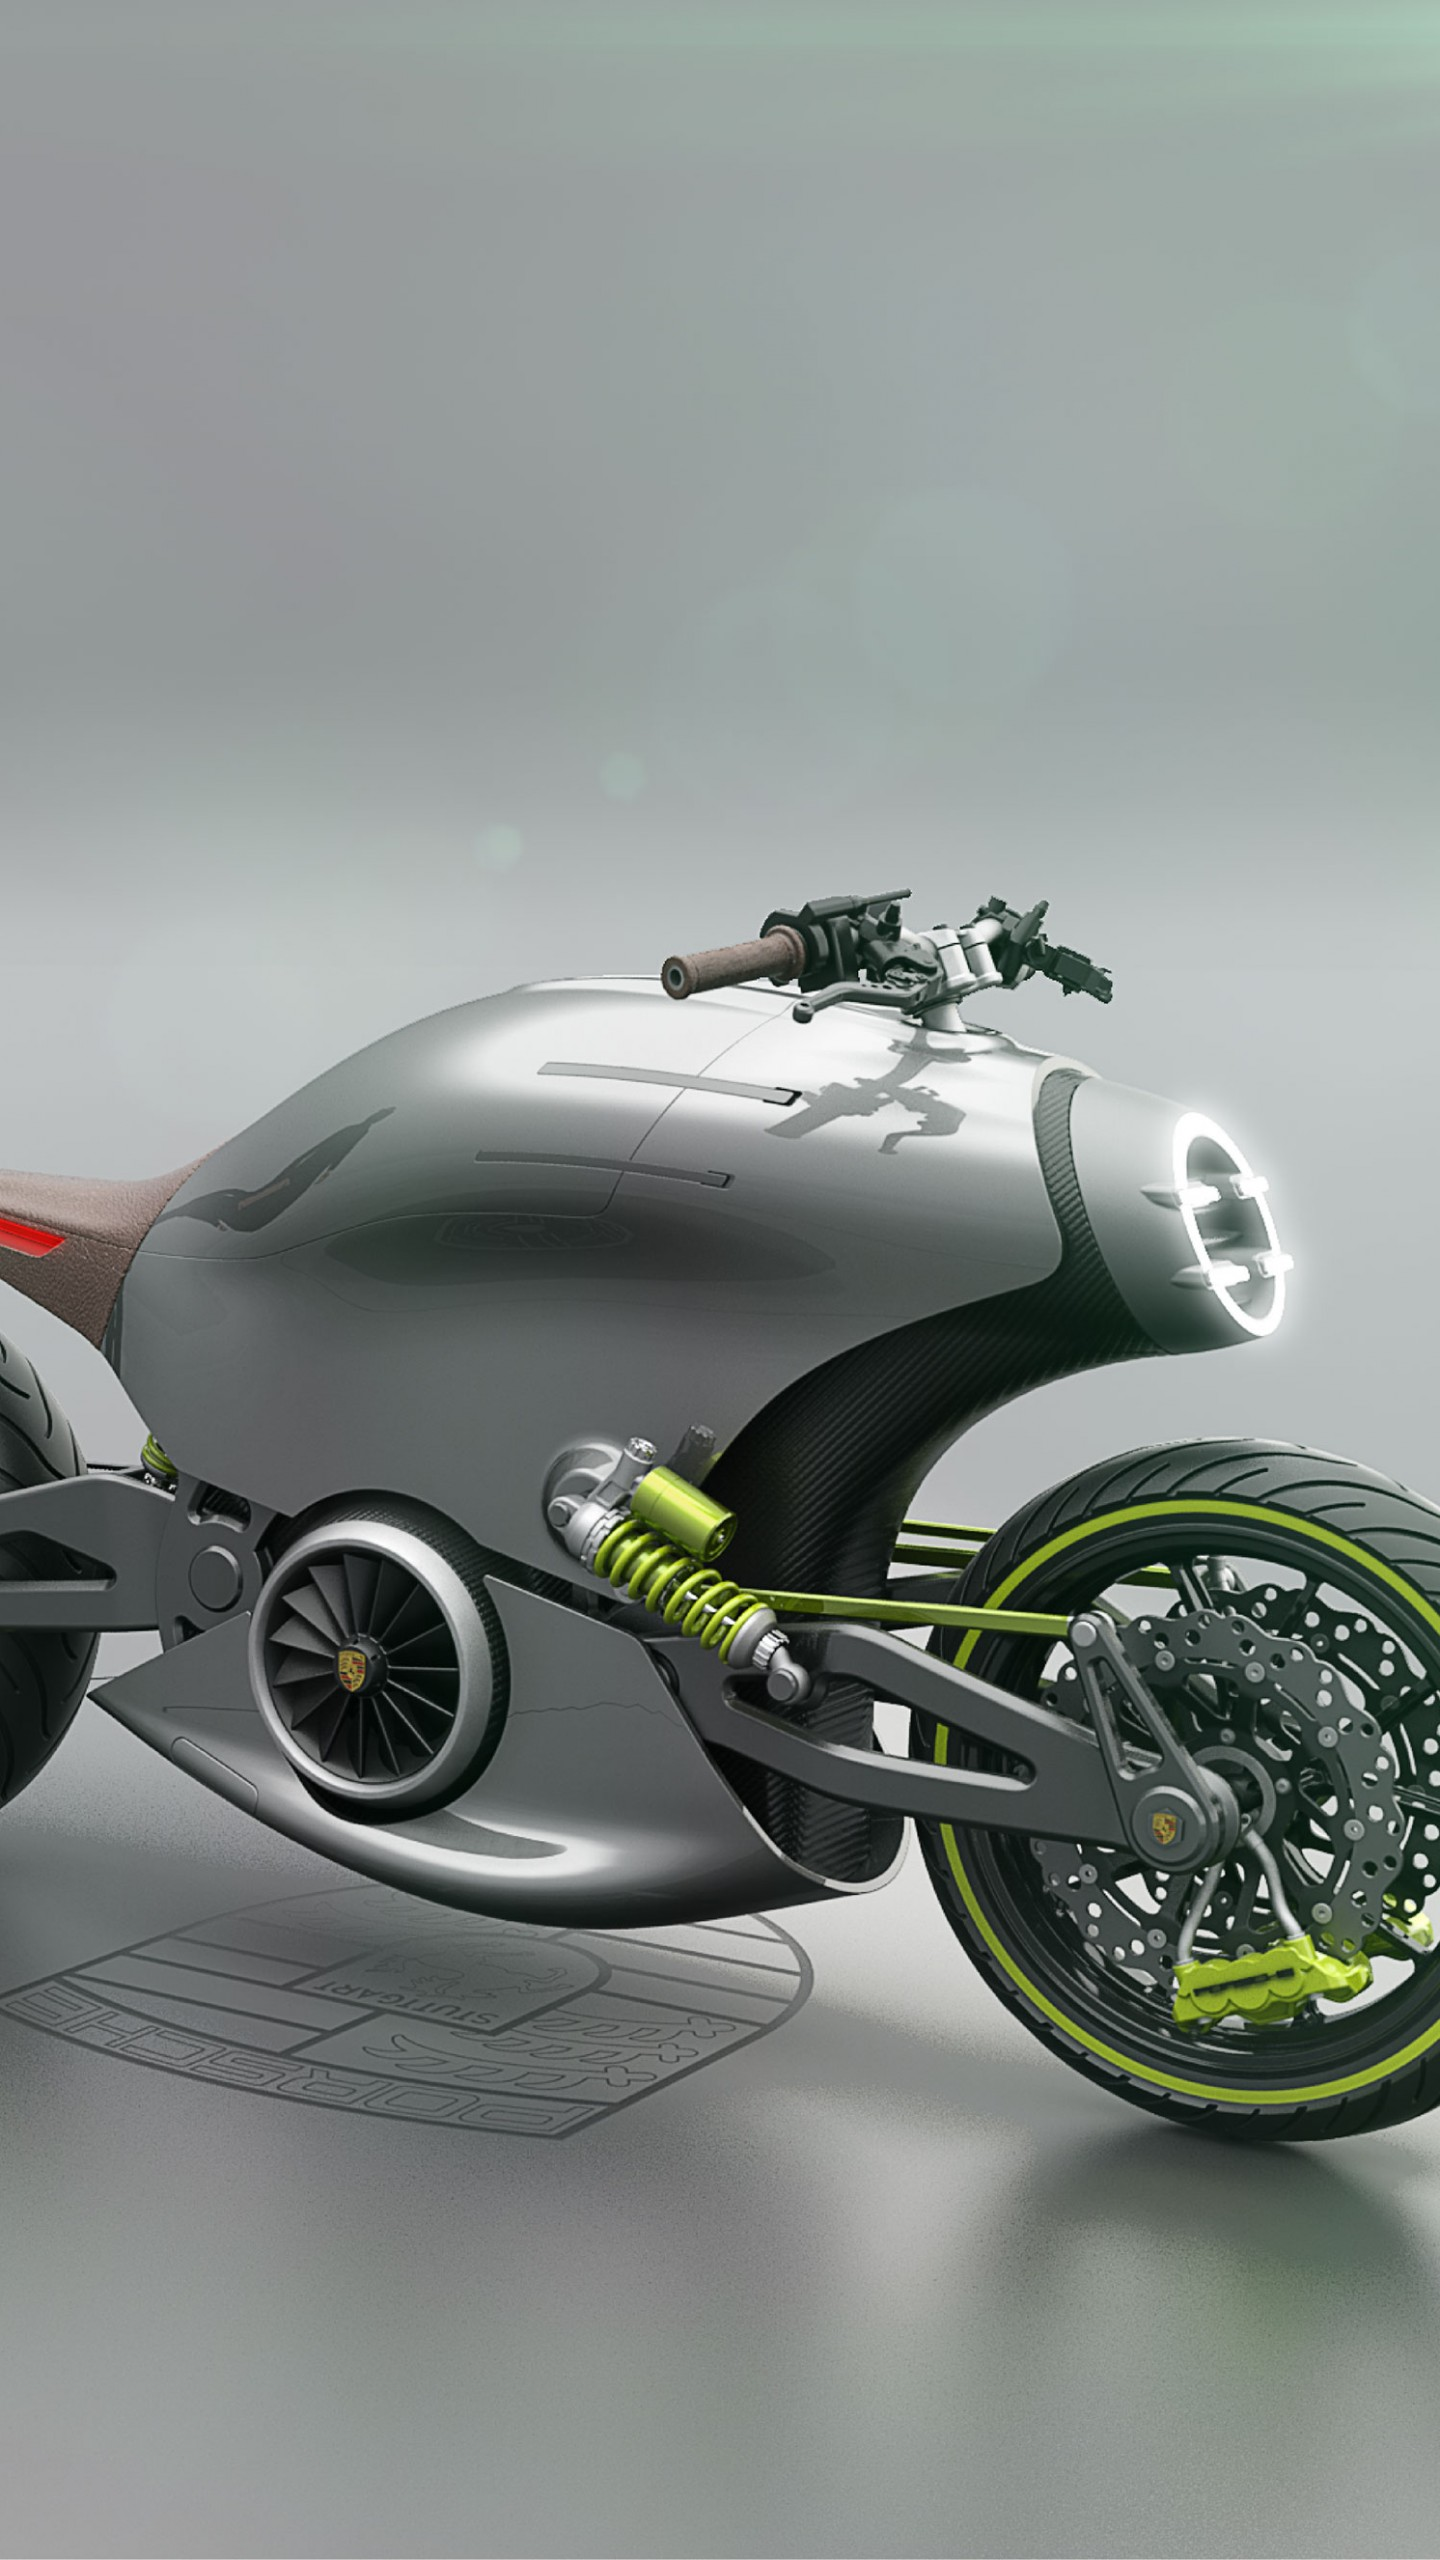 3d Wallpapers Cars And Bikes Wallpaper Porsche 618 Electric Motorcycle 4k Cars